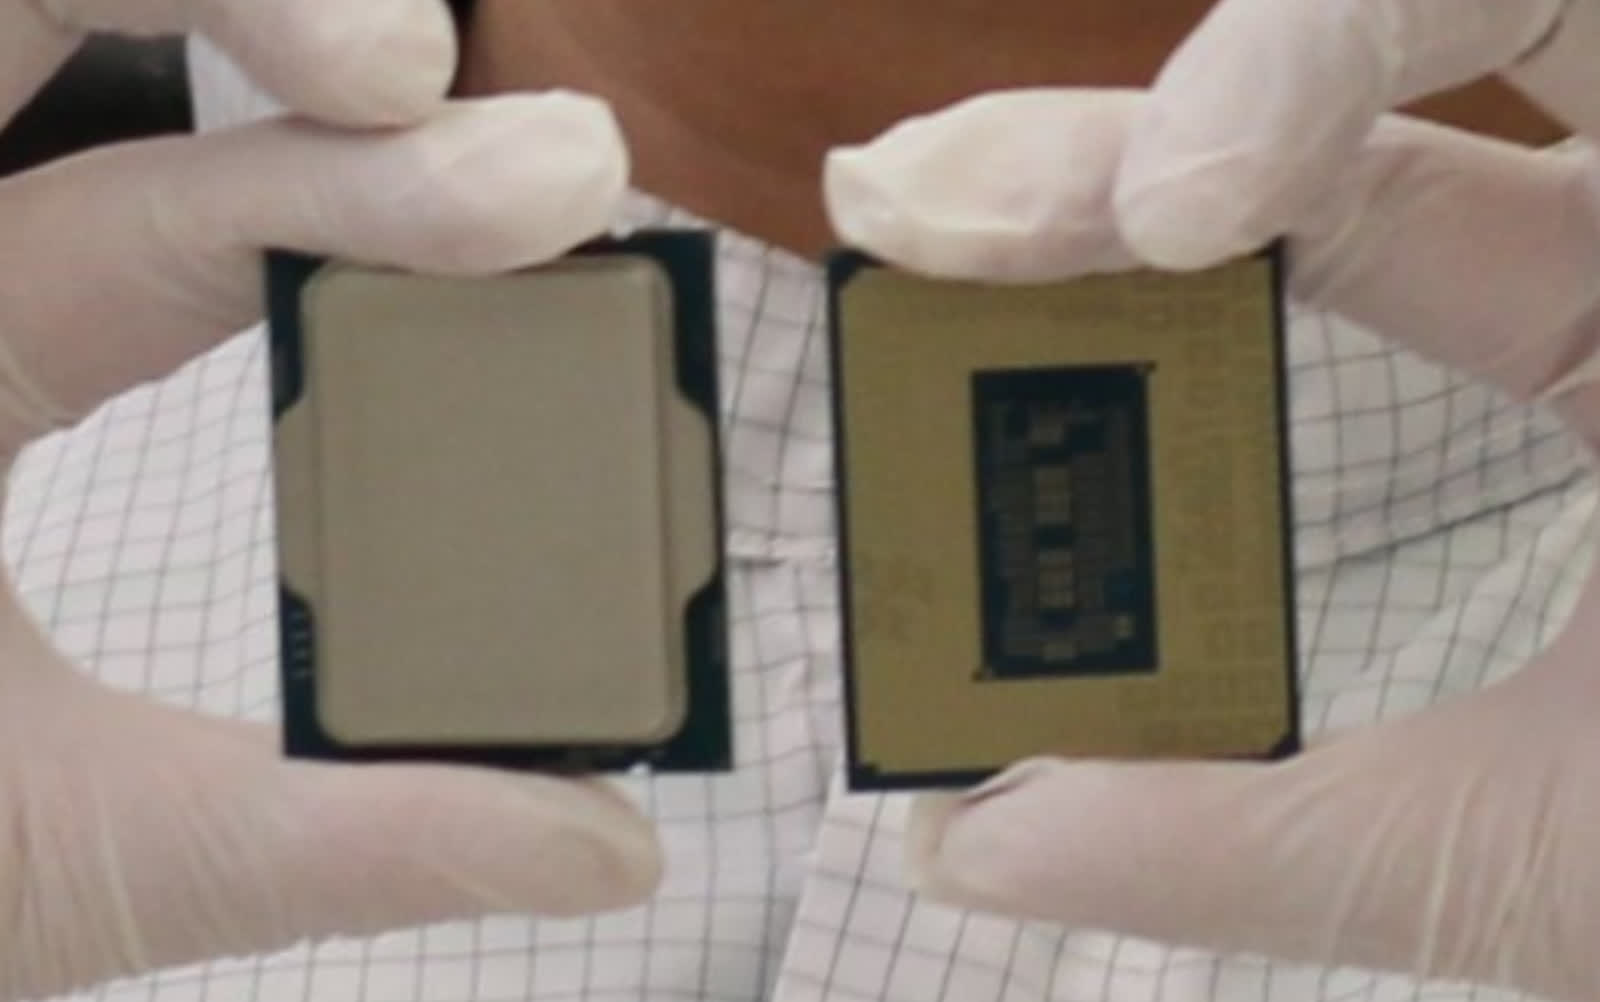 Intel Alder Lake CPU showcased in first official picture